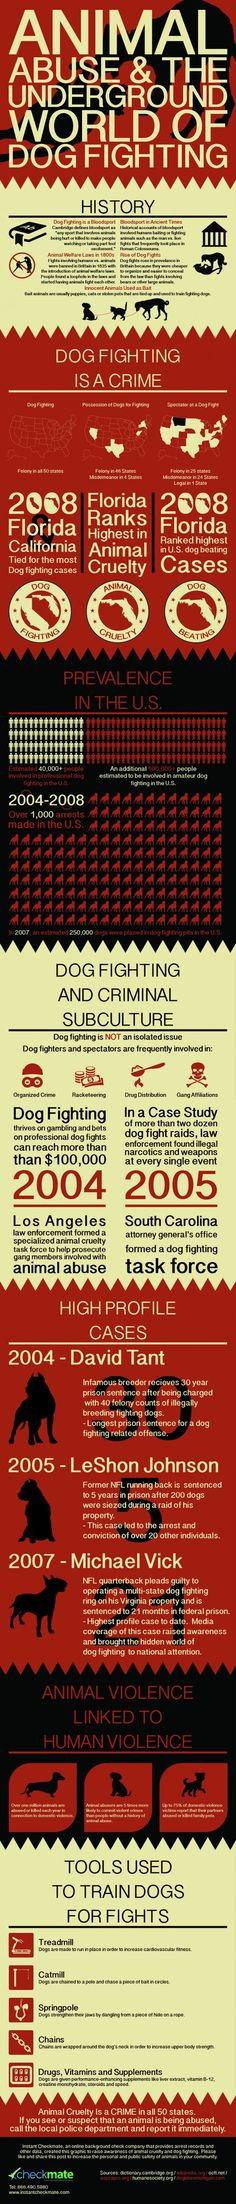 INFOGRAPHIC: ANIMAL ABUSE AND THE UNDERGROUND WORLD OF DOG FIGHTING